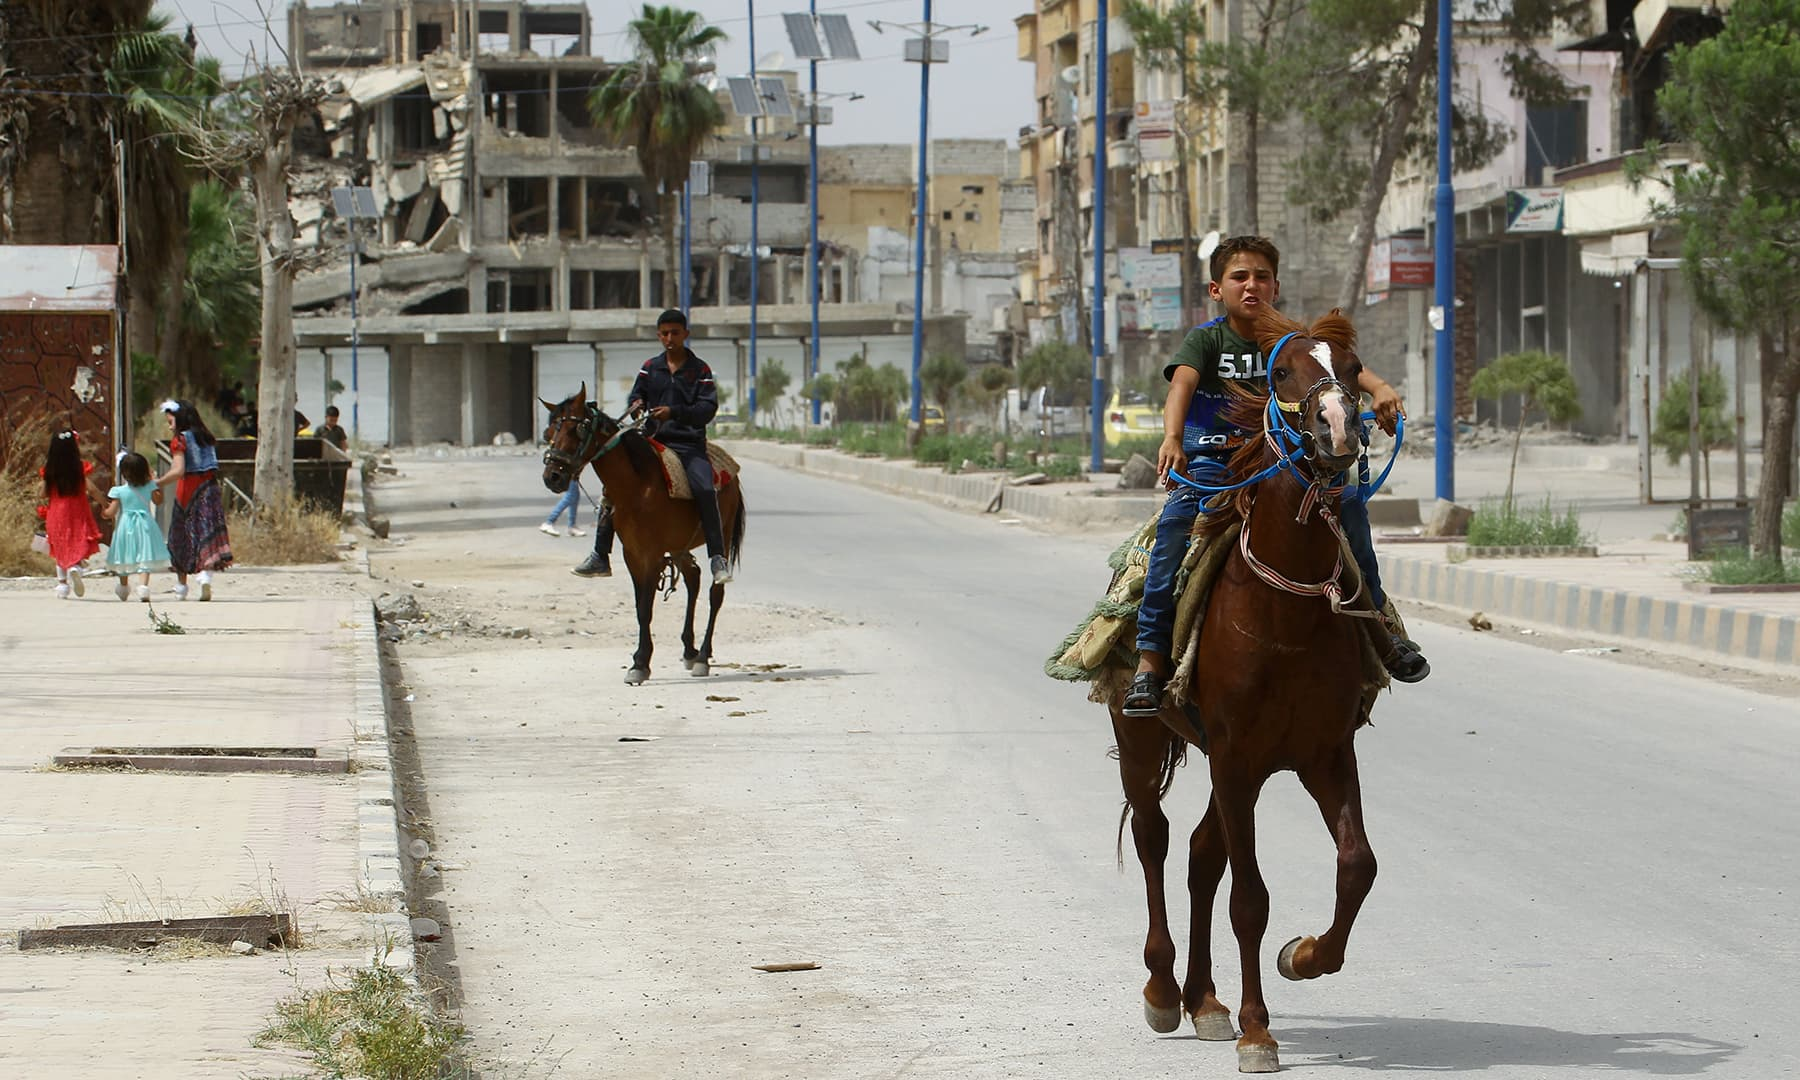 A boy rides on a horse near a damaged building during the first day of Eidul Fitr in Raqqa, Syria on June 5. — Reuters